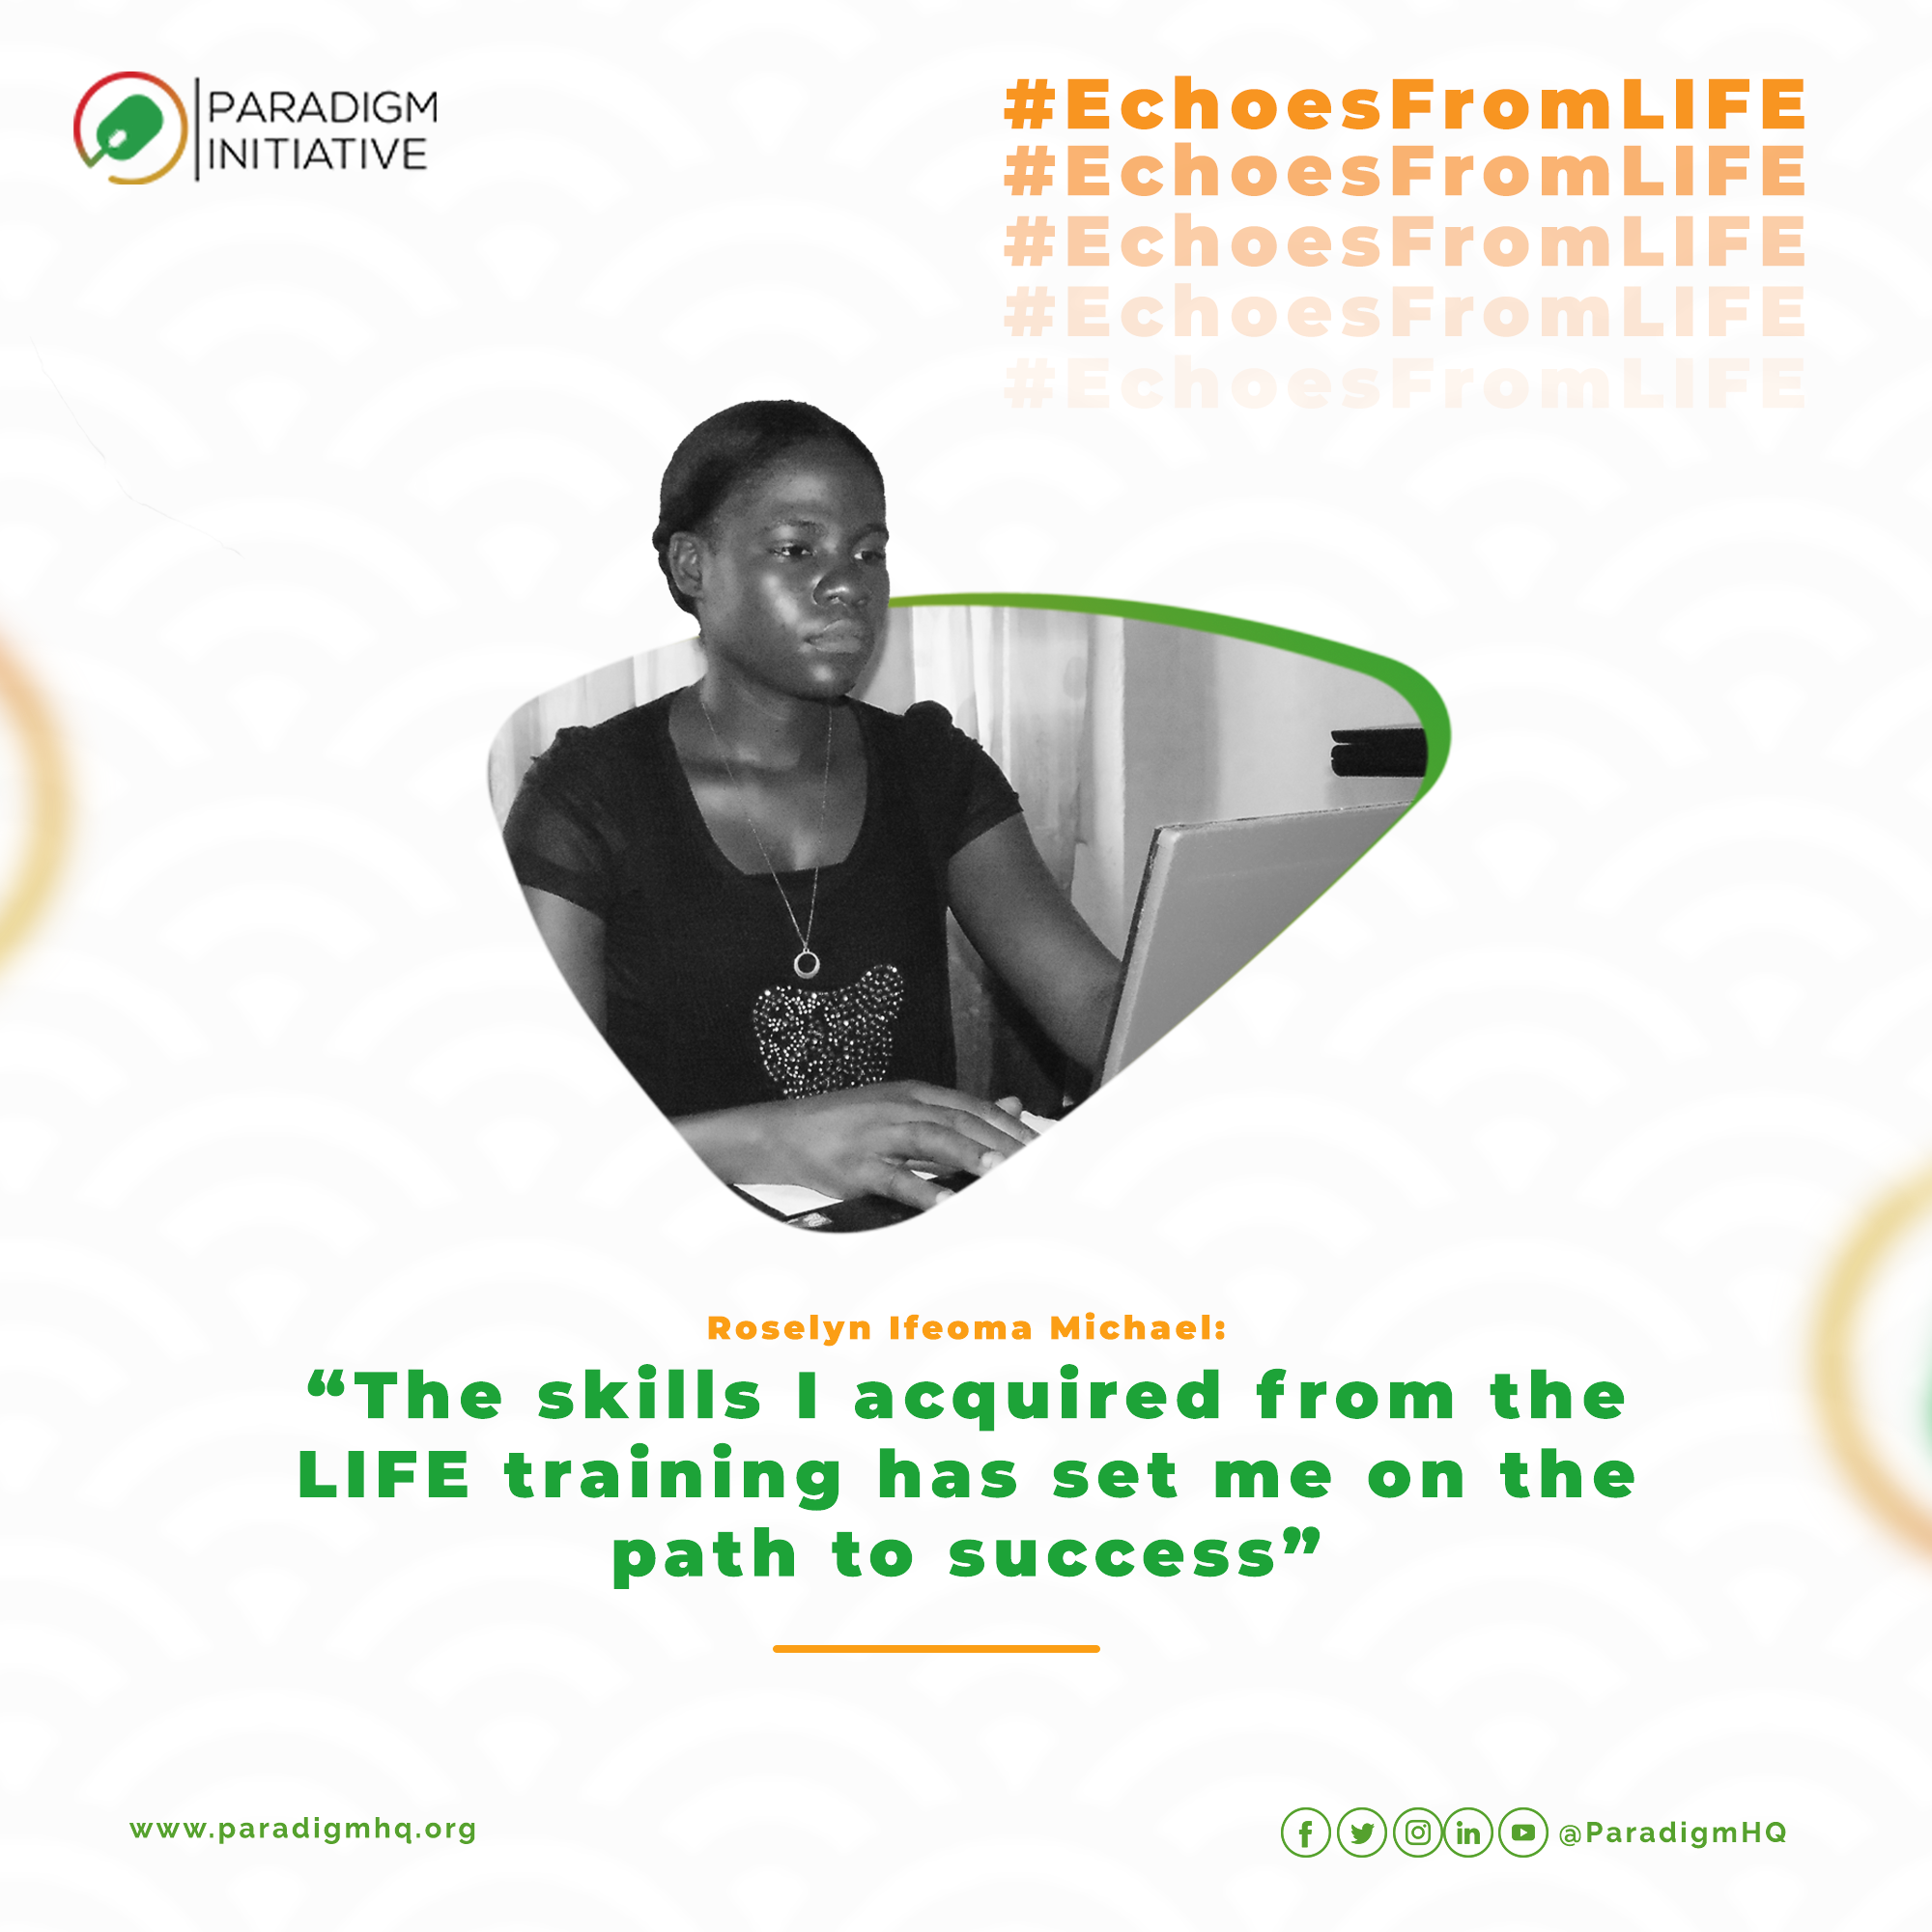 Roselyn Ifeoma Micheal: The skills I acquired from L.I.F.E has set me on the path to success